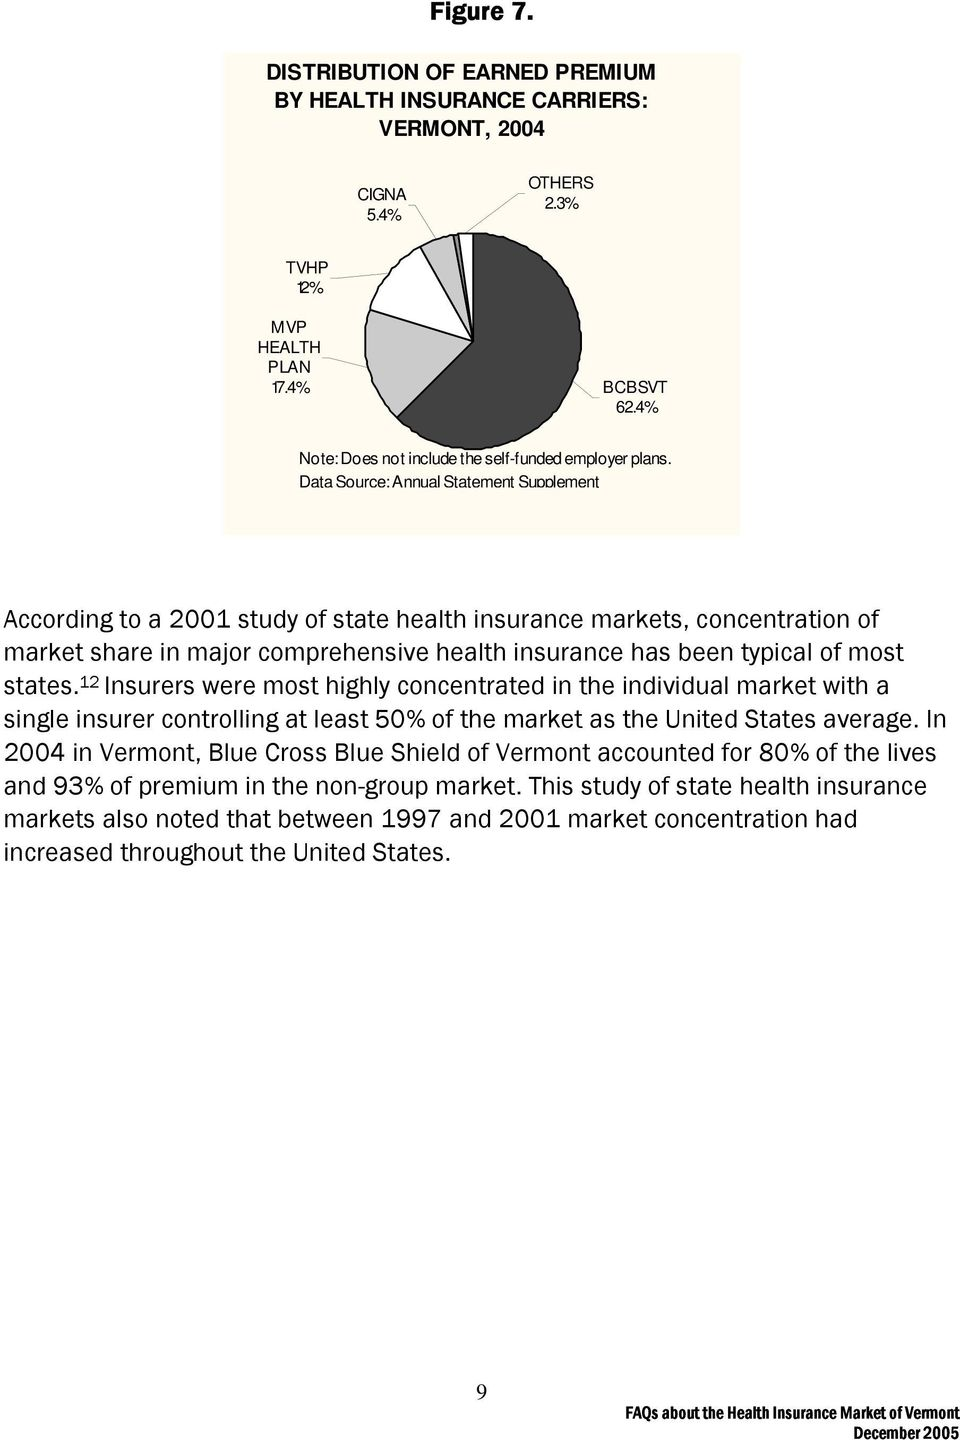 Data Source: Annual Statement Supplement According to a 2001 study of state health insurance markets, concentration of market share in major comprehensive health insurance has been typical of most